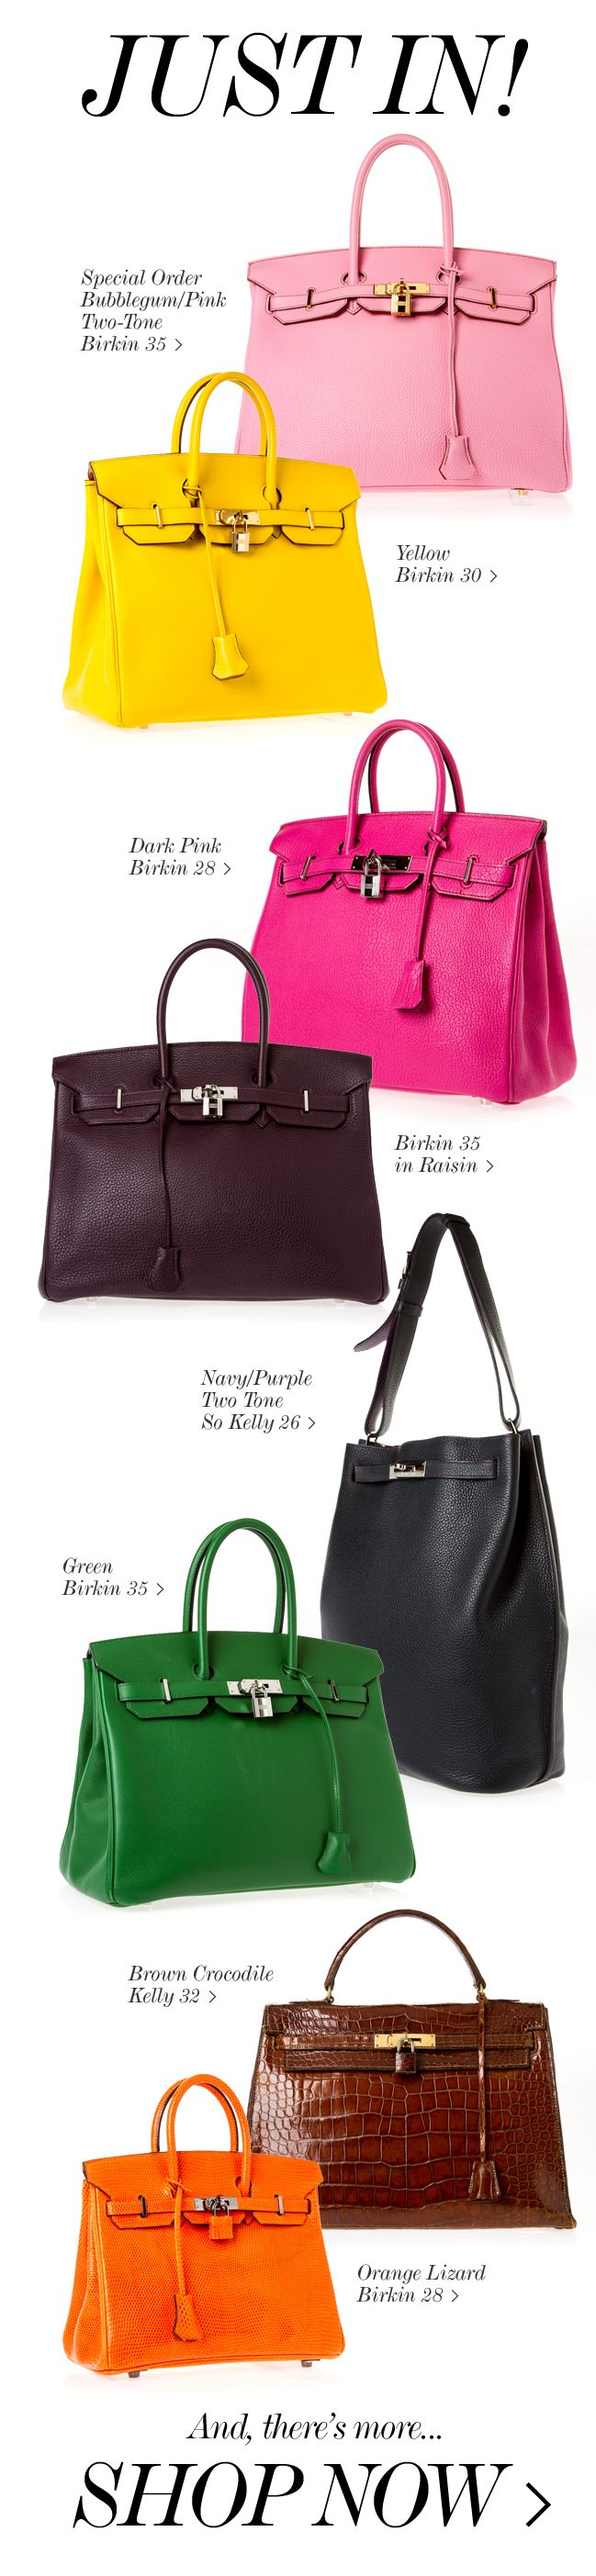 Hermes Handbag Manufacturing Fashion bags only $269. #hermes #bags